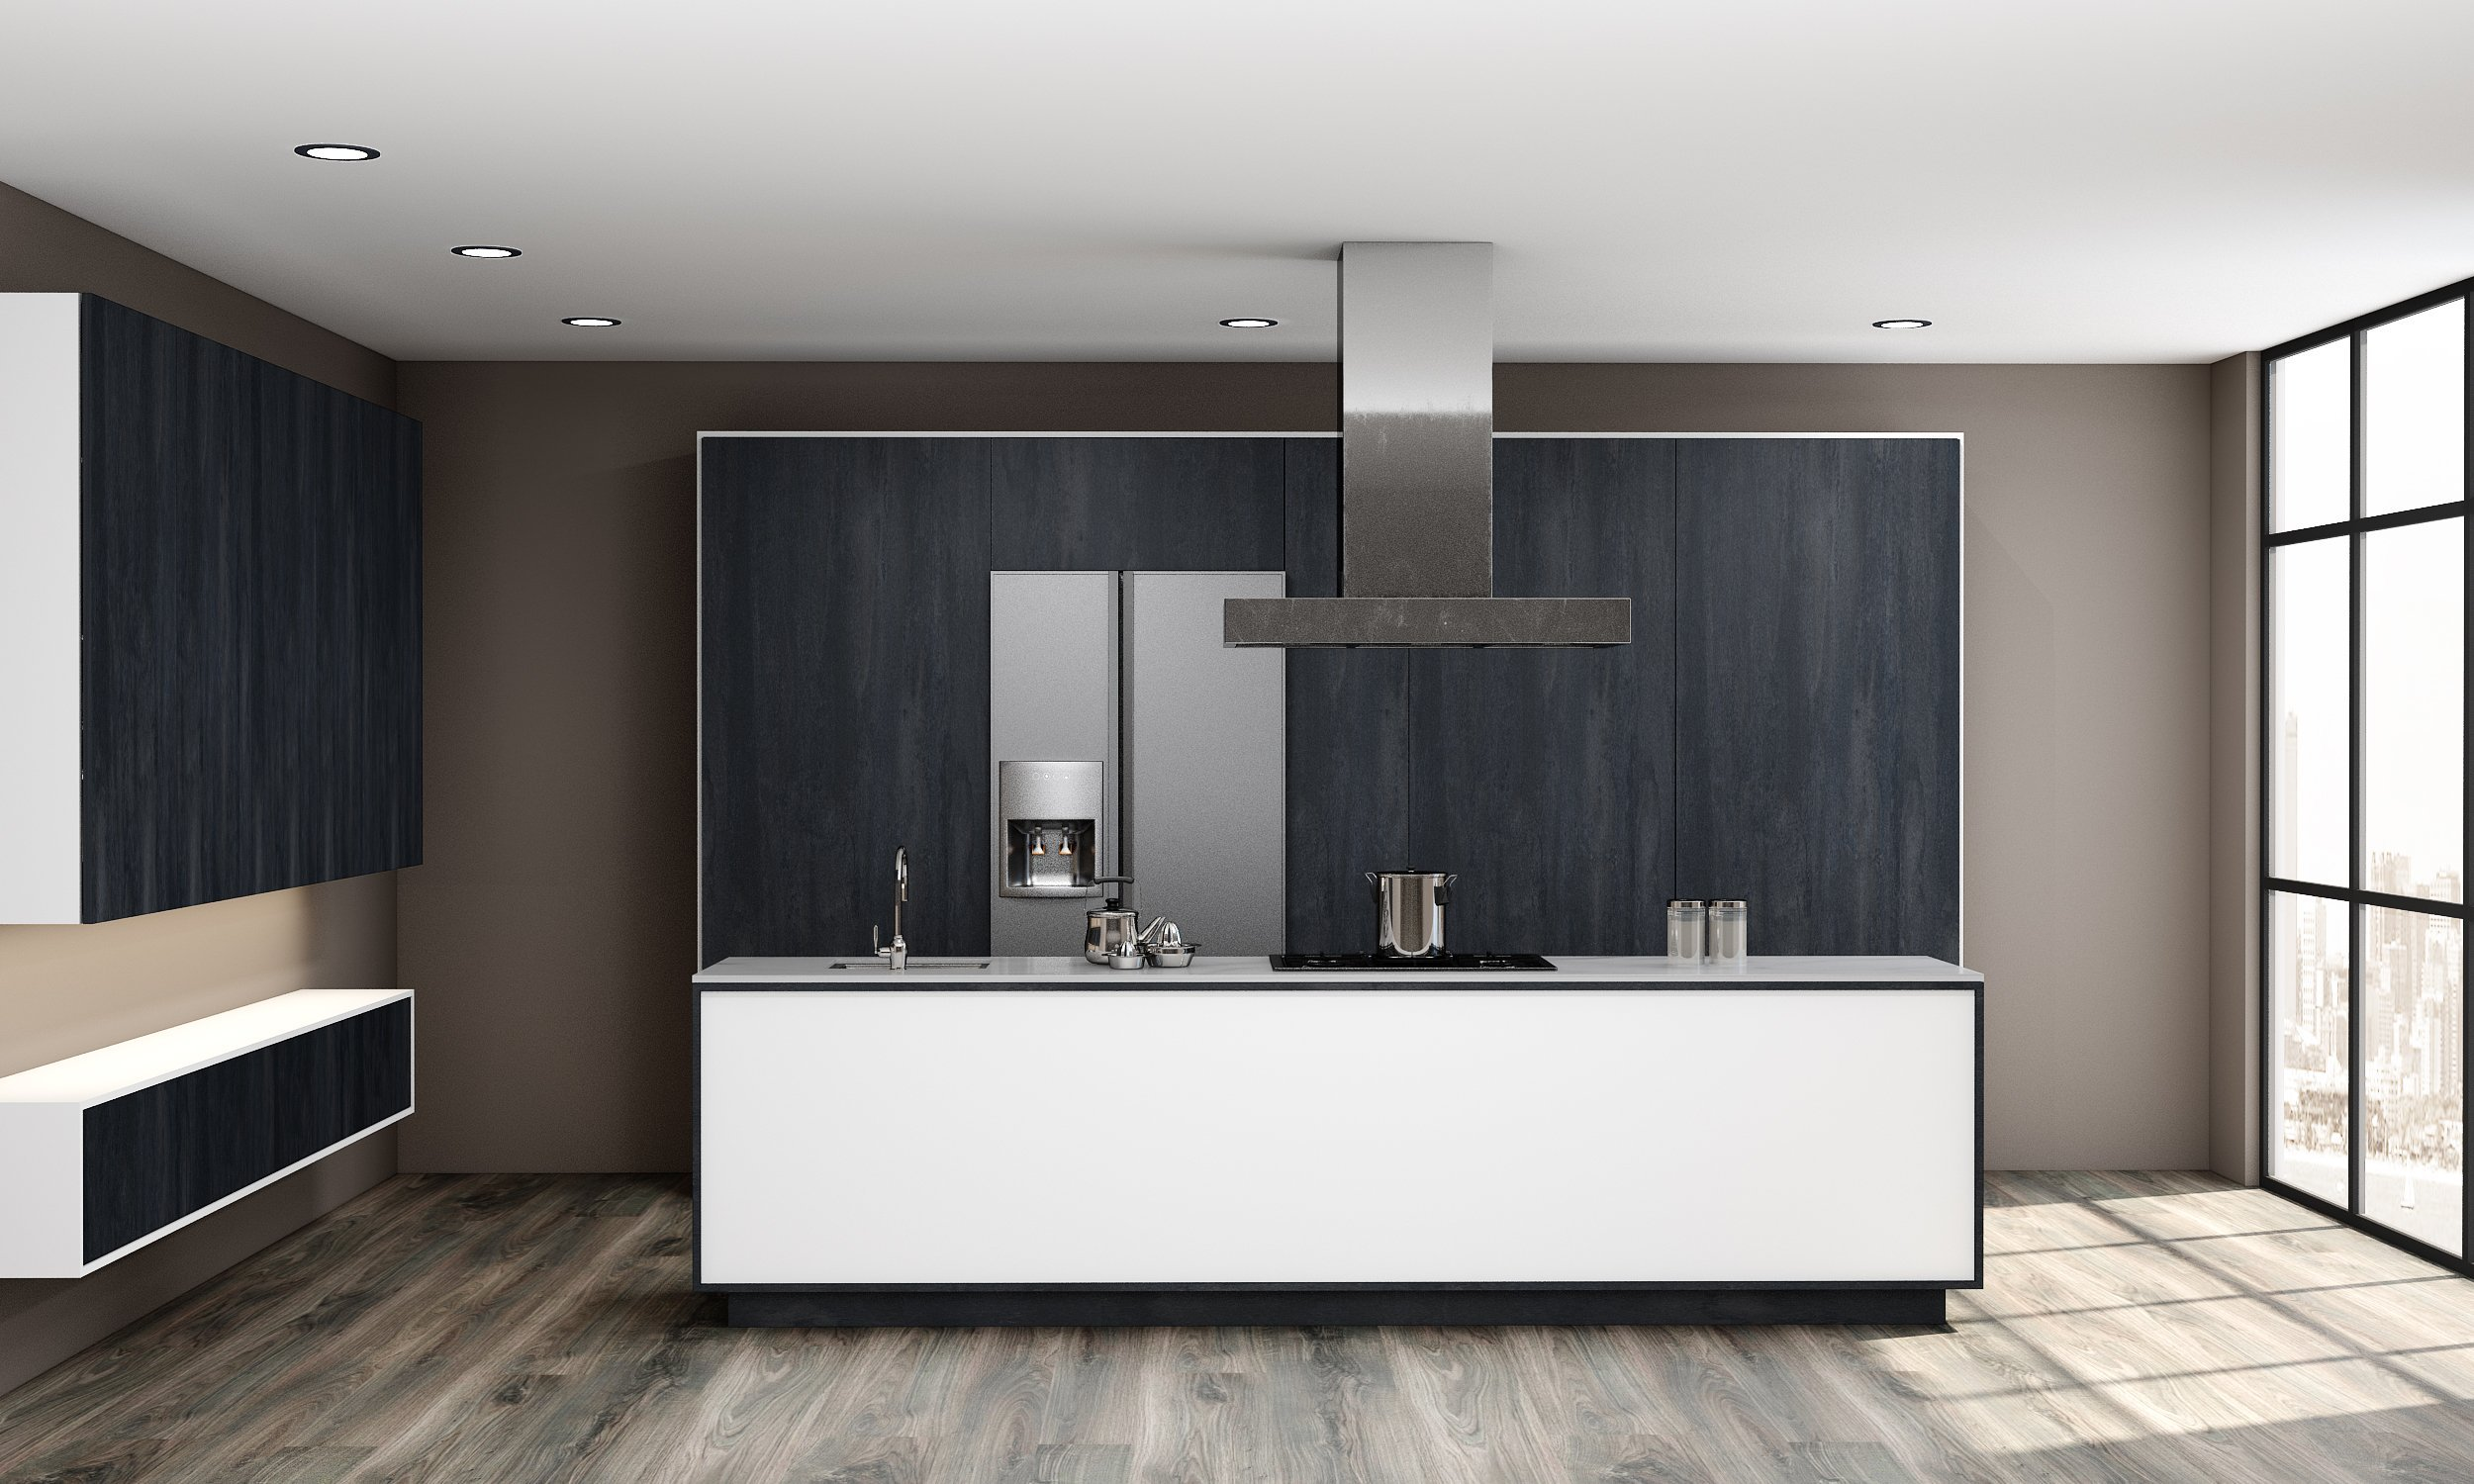 Kitchen With Pocket Doors in Charcoal Black Finish